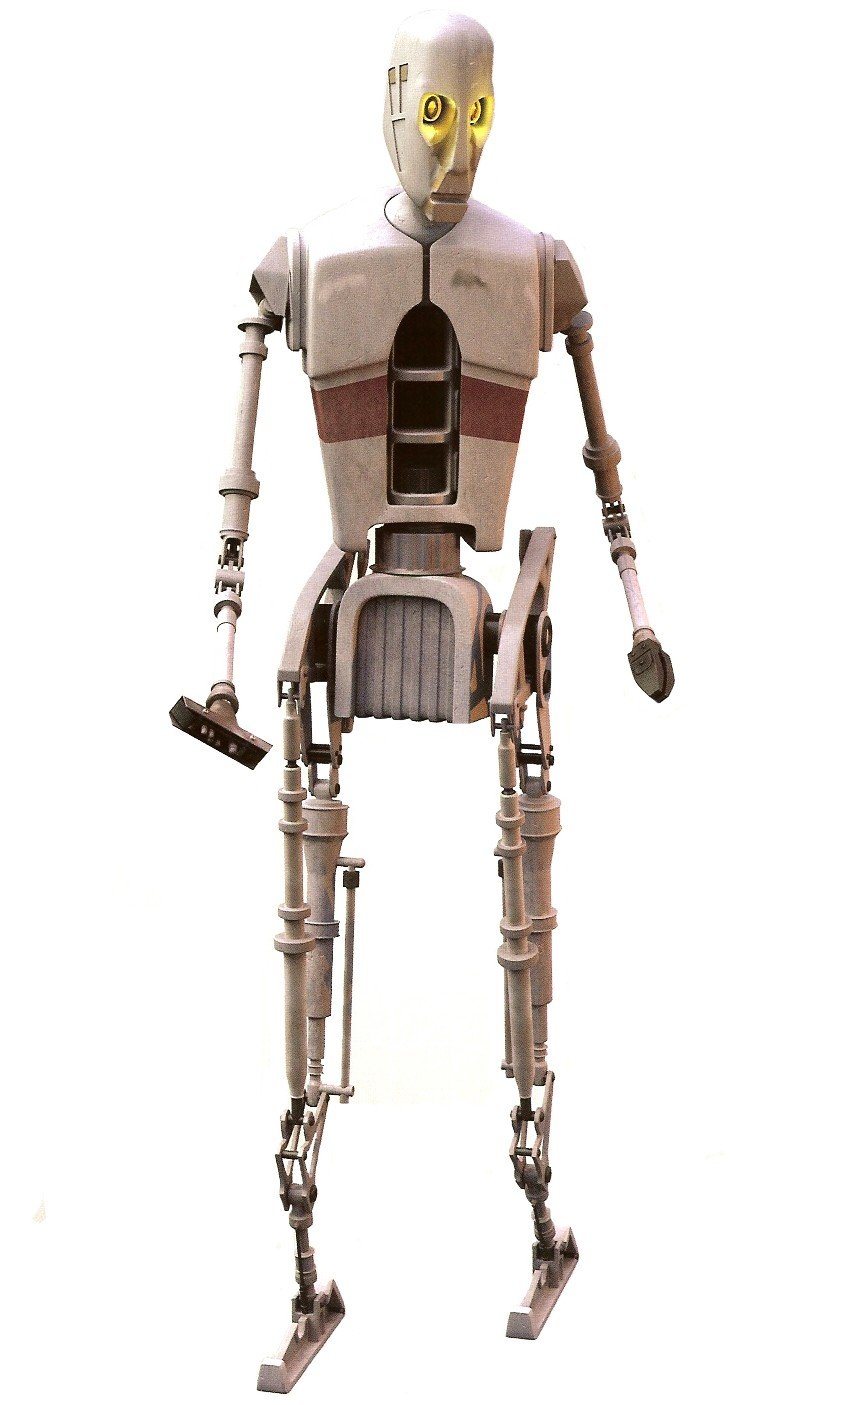 8D Smelter Droid Wookieepedia The Star Wars Wiki